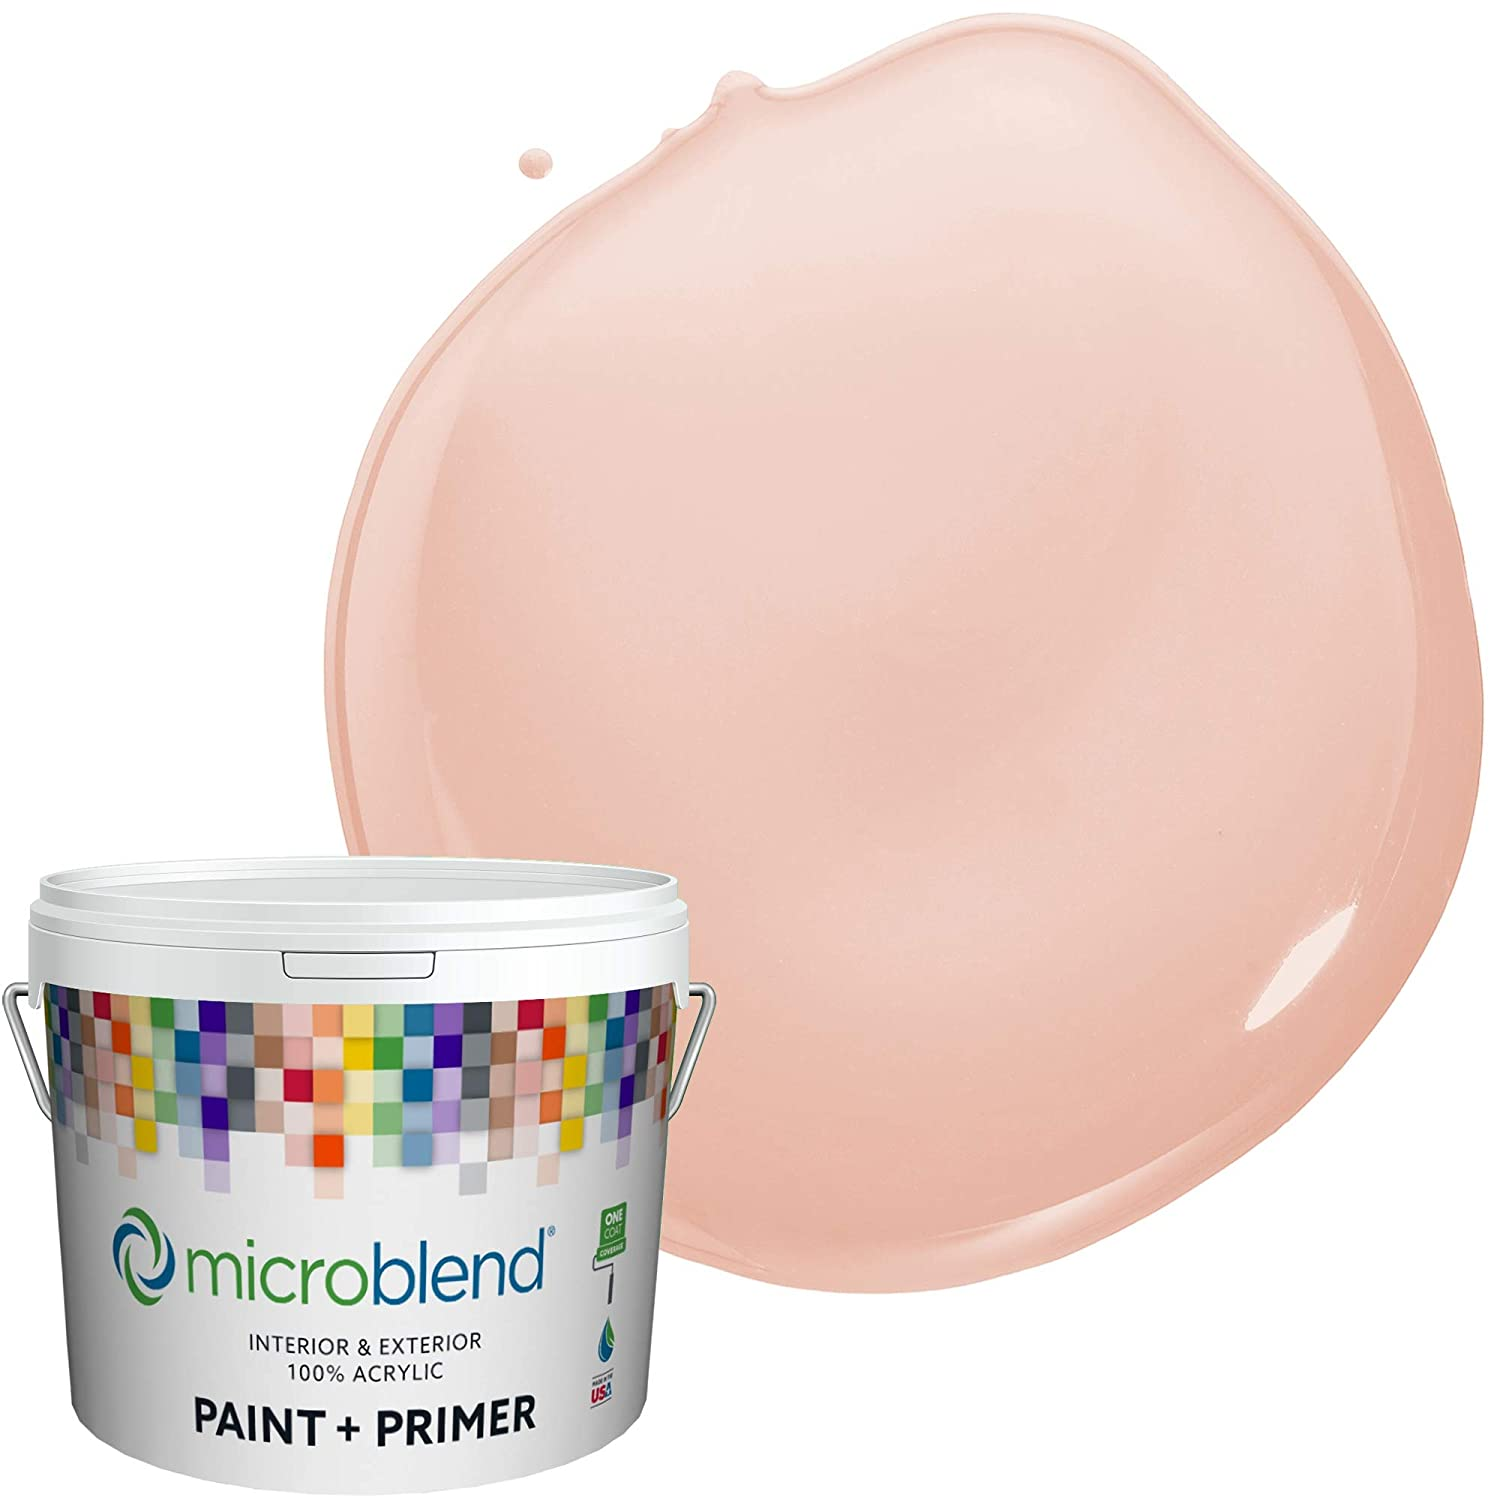 Microblend Interior Paint and Primer - Pink/Gypsy Bell, Flat Sheen, 2-Gallon, Premium Quality, One Coat Hide, Low VOC, Washable, Microblend Reds Family